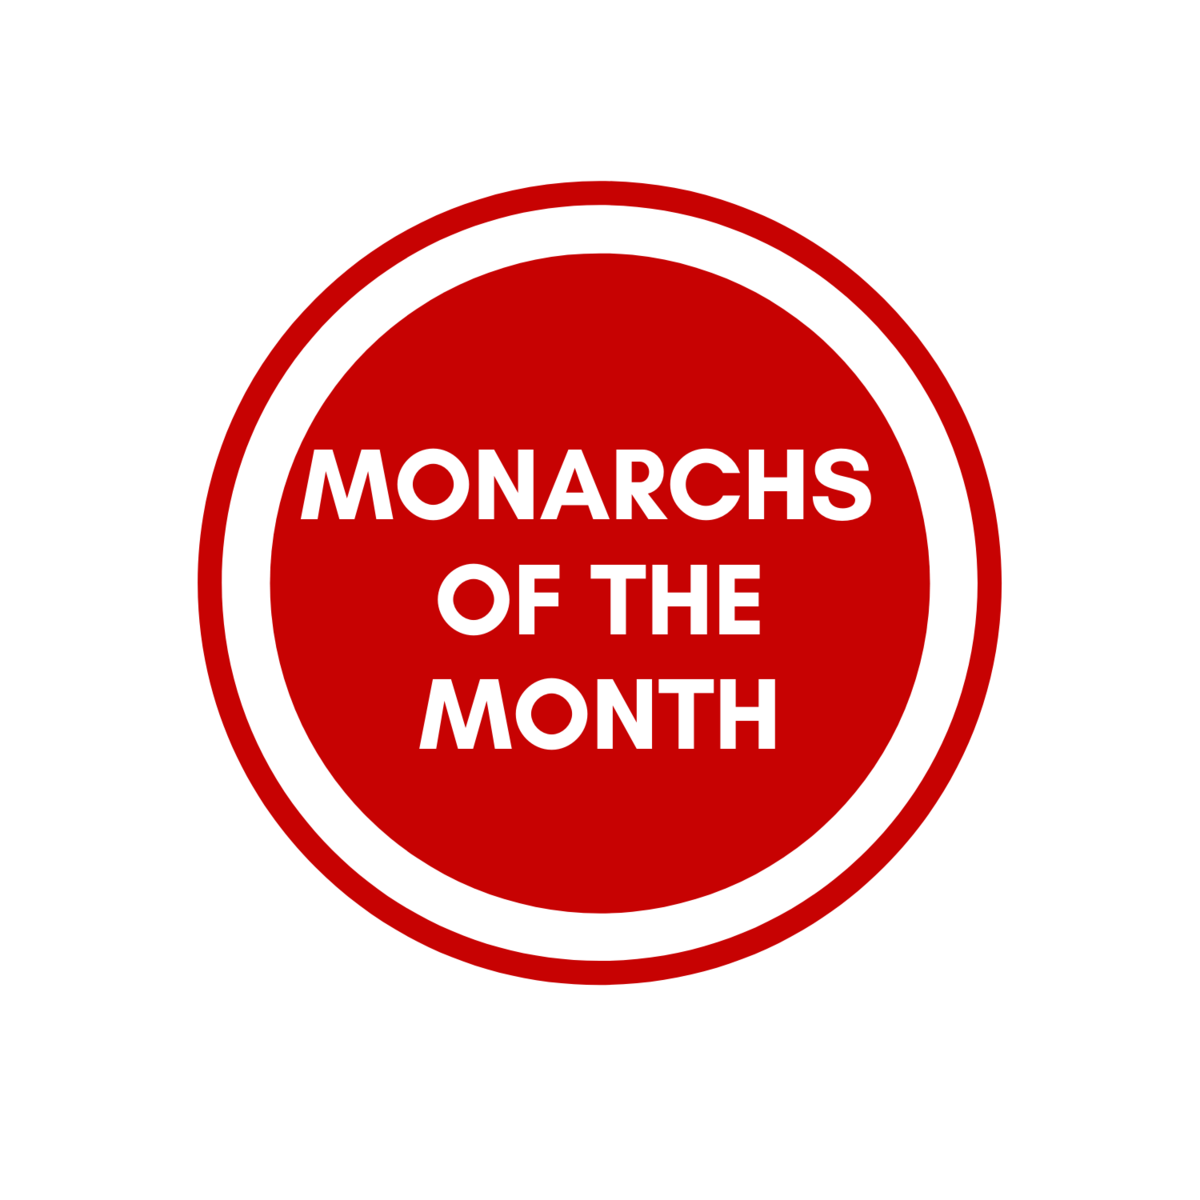 Monarchs of the Month